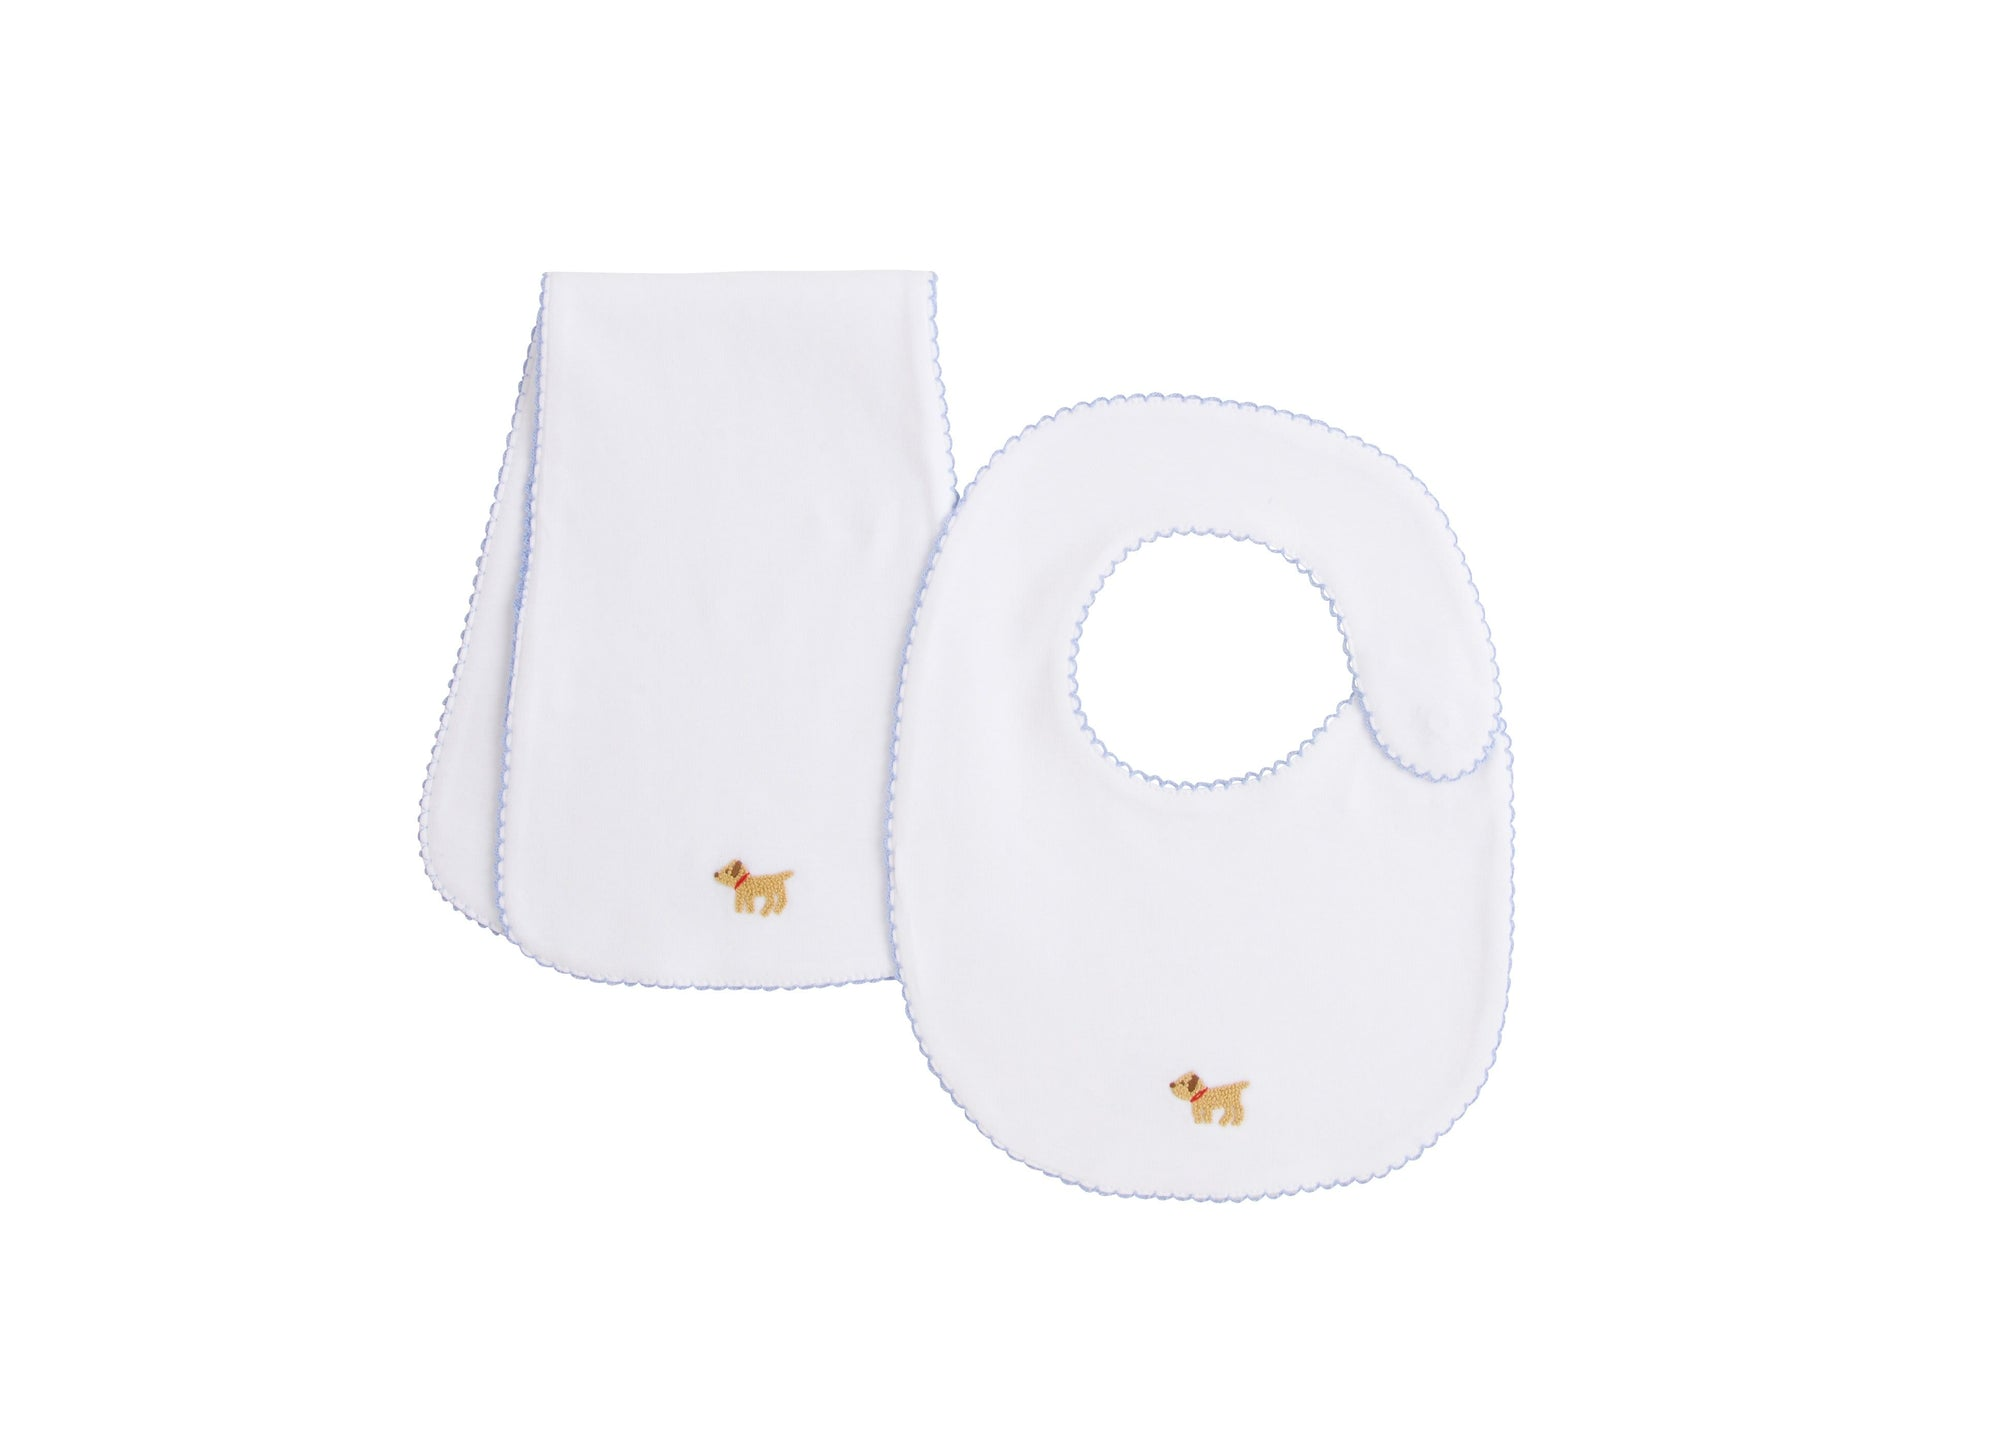 Pinpoint Bib N' Burp Set-Lab, Little English, classic children's clothing, preppy children's clothing, traditional children's clothing, classic baby clothing, traditional baby clothing